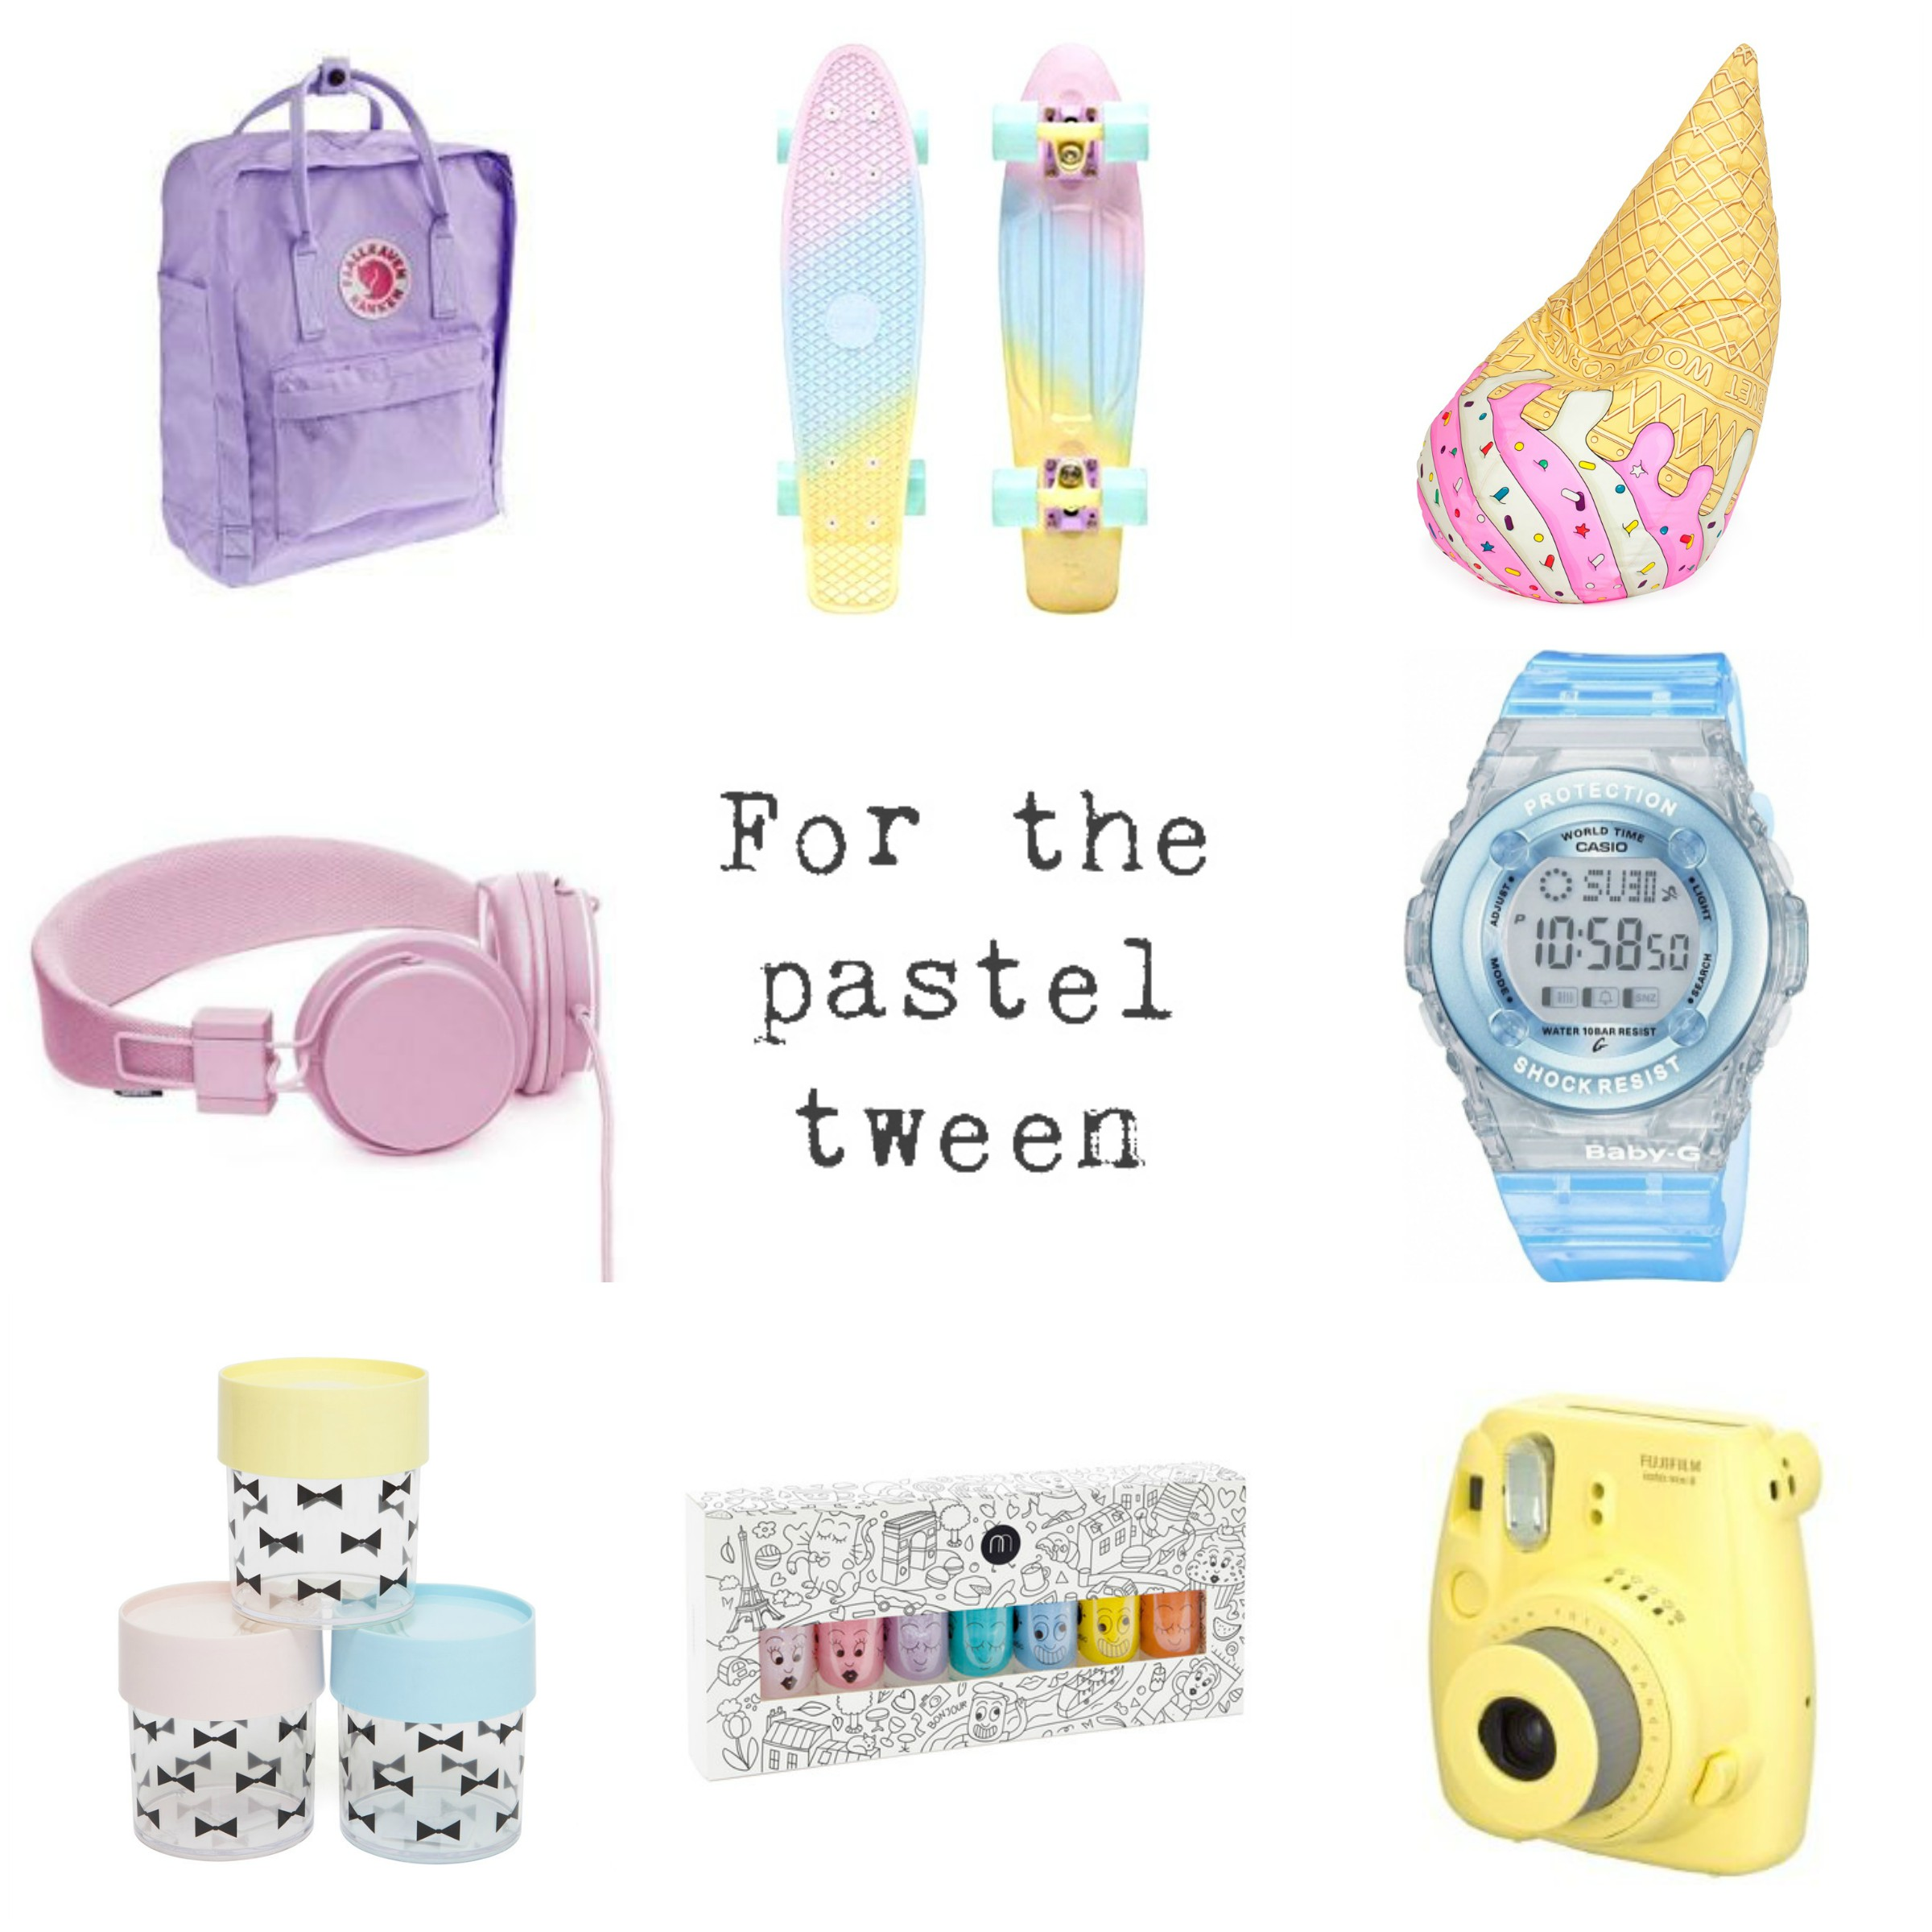 For_the_pastel_tween_christmas_git_guide_holiday